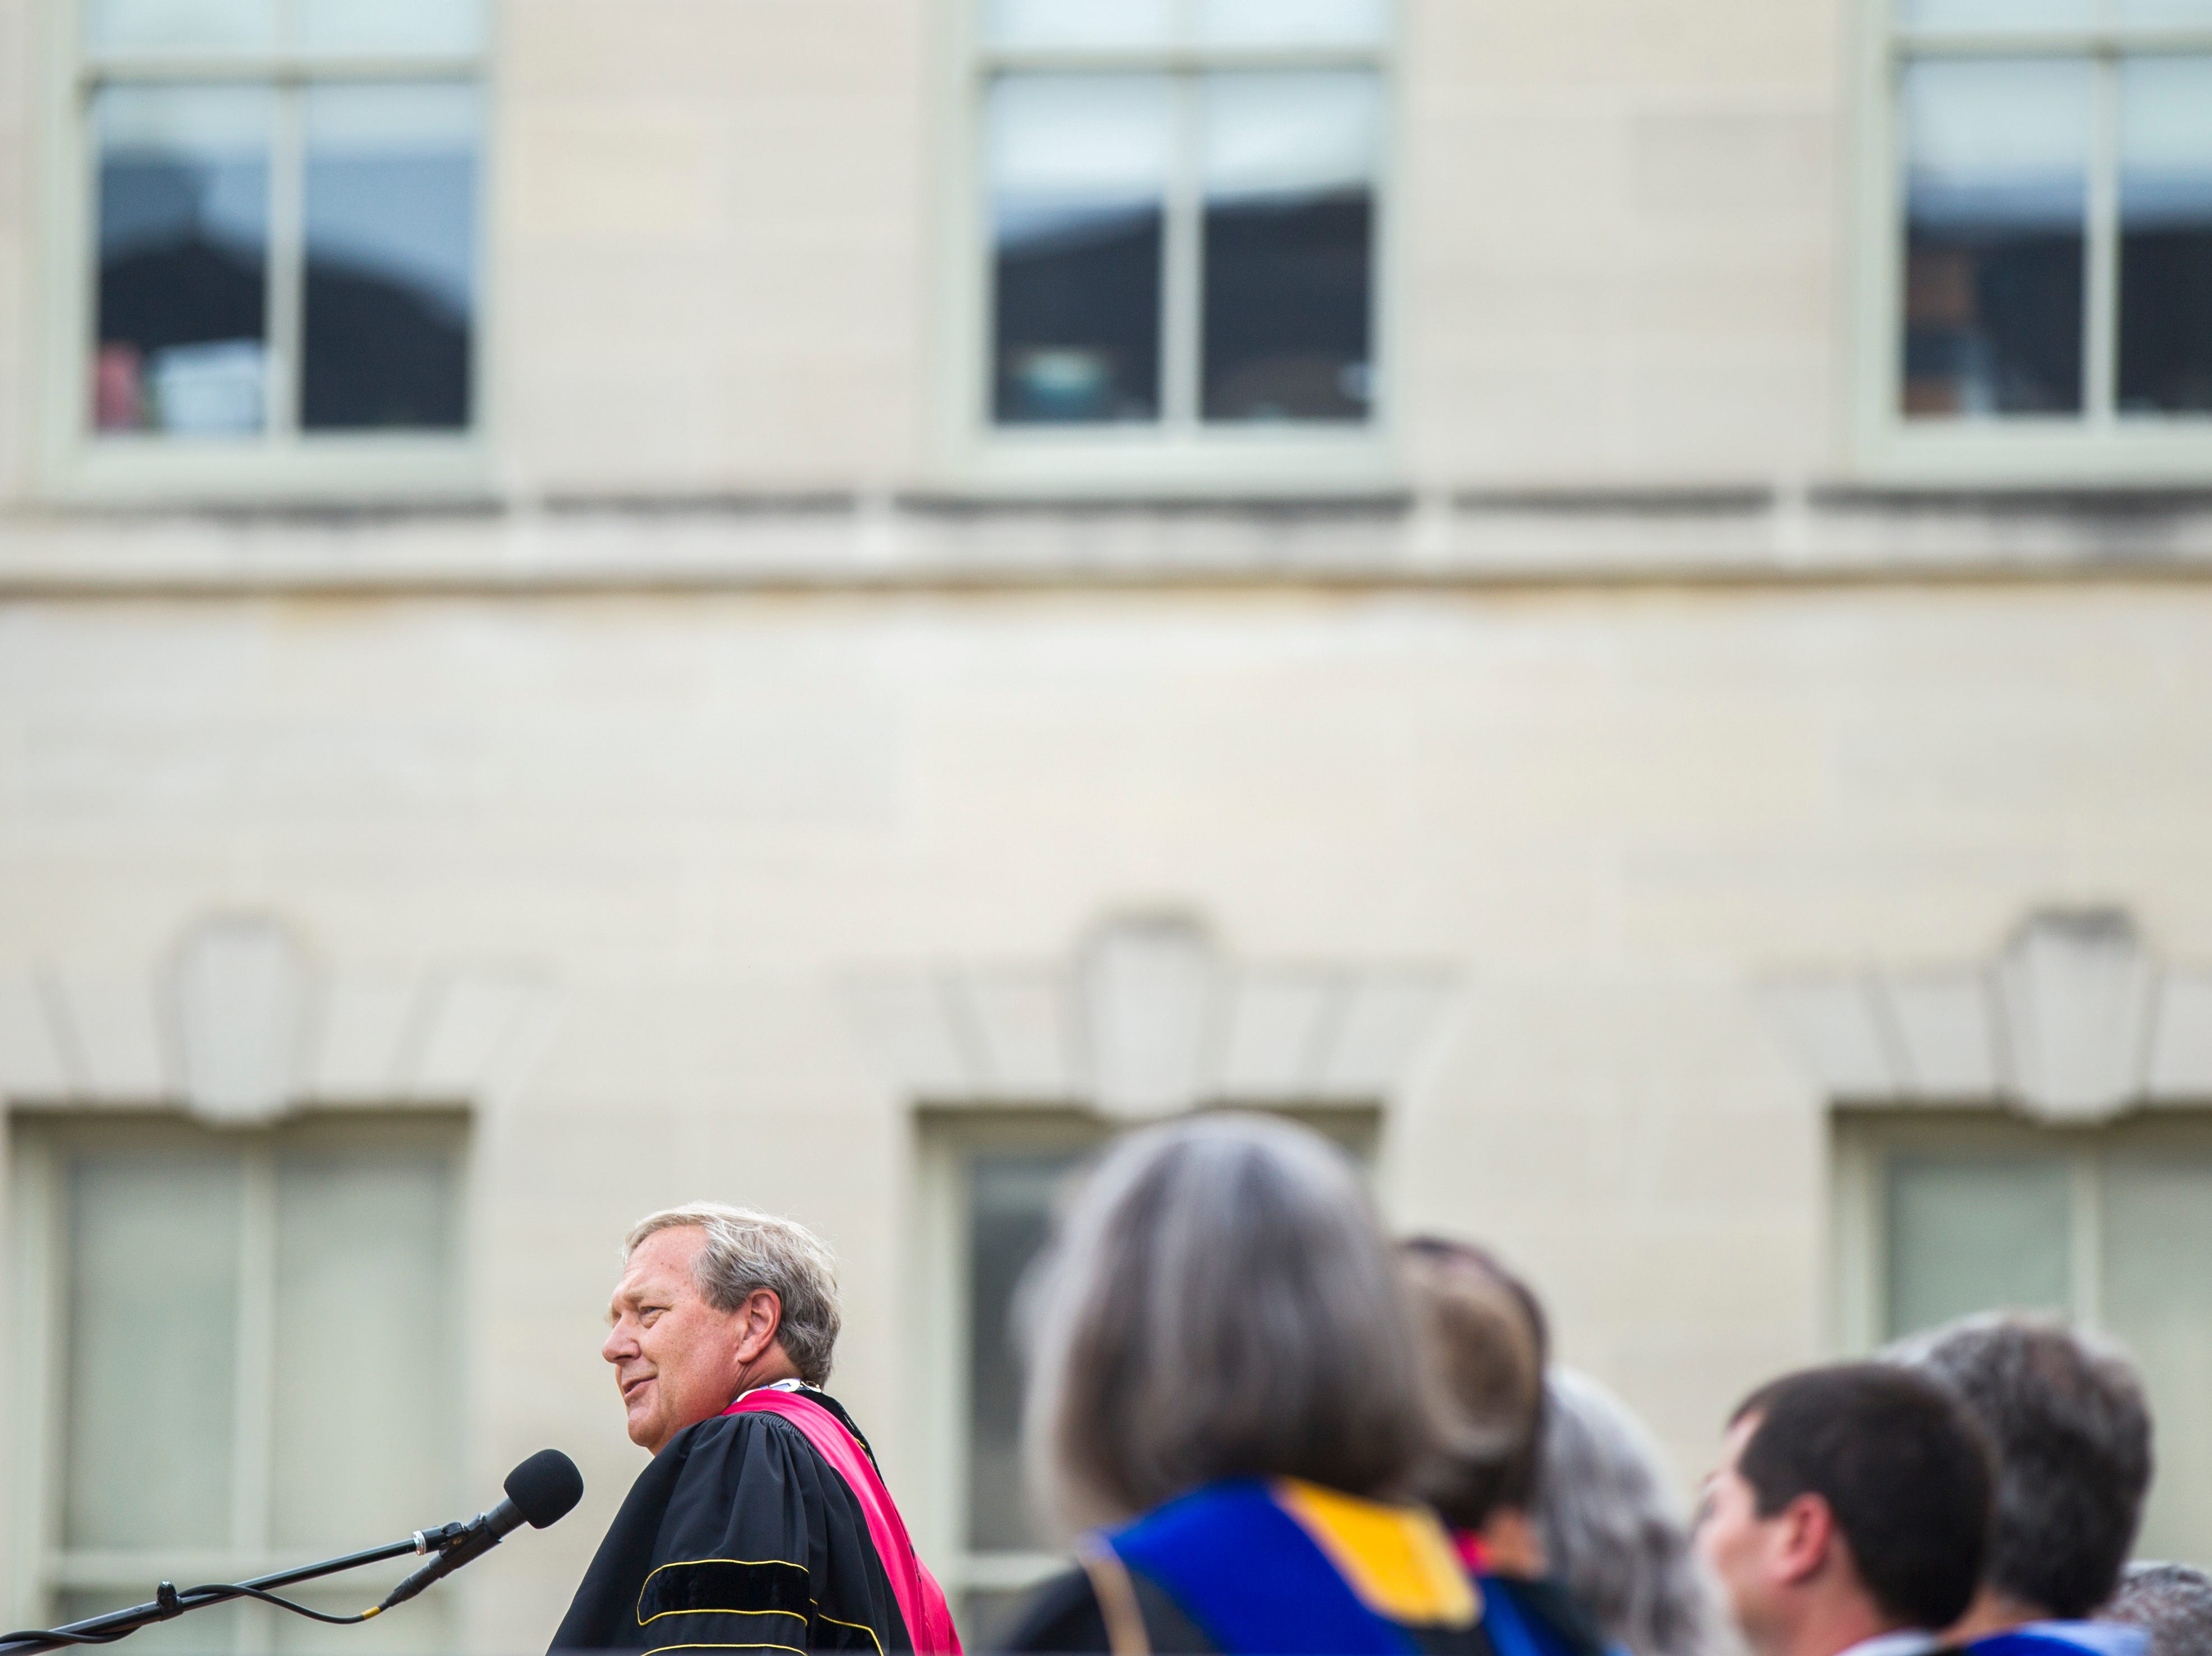 University of Iowa President J. Bruce Harreld speaks during the University of Iowa class of 2022 convocation on Sunday, Aug. 19, 2018, at the Pentacrest in Iowa City.